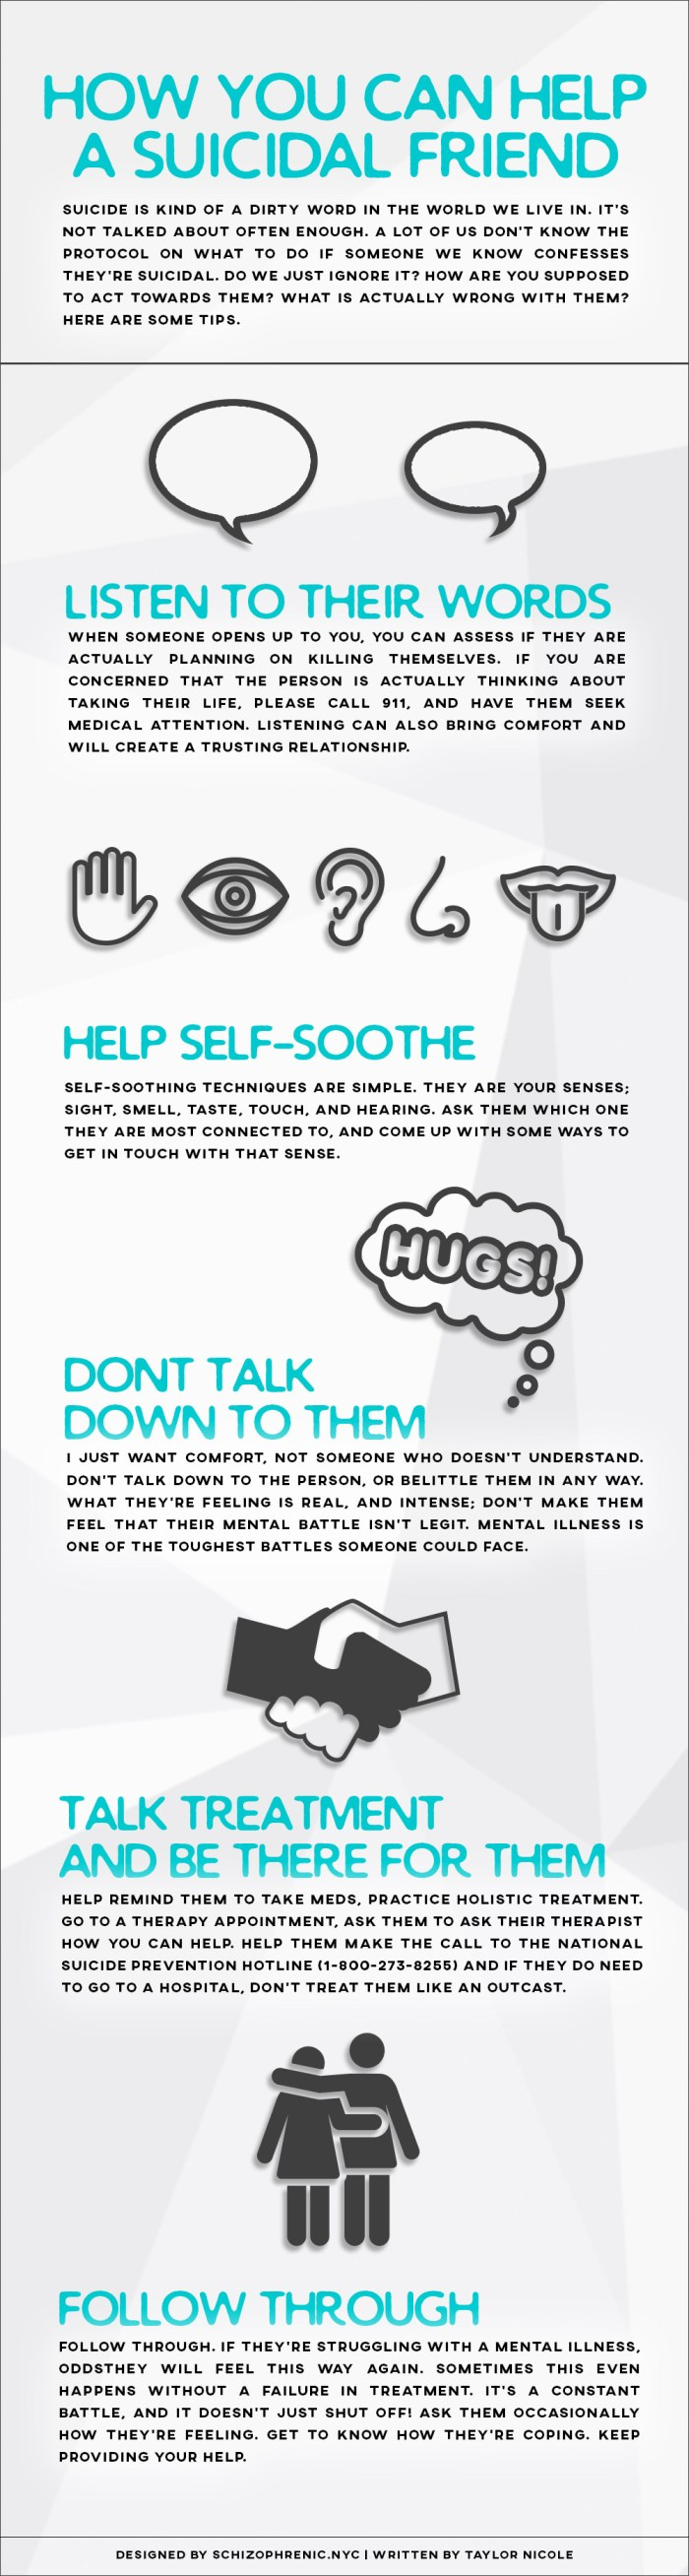 How you can help a suicidal friend infographic 1